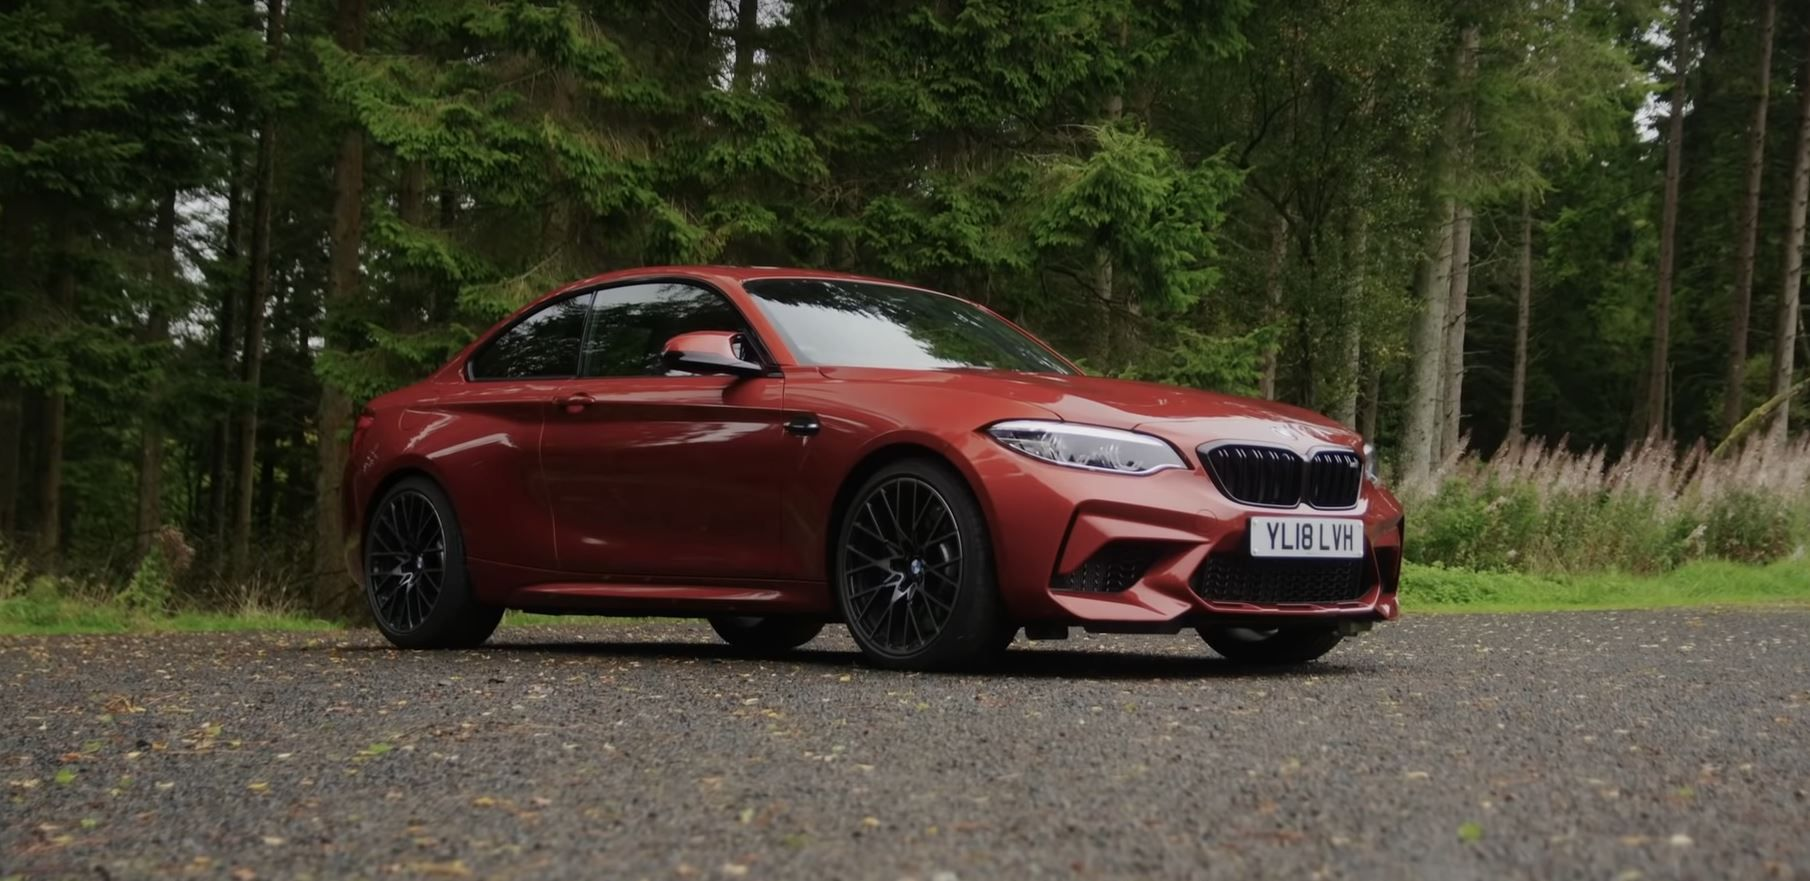 Video Bmw M2 Competition Nominated For Evo Car Of The Year Award Bmw M2 Bmw Car